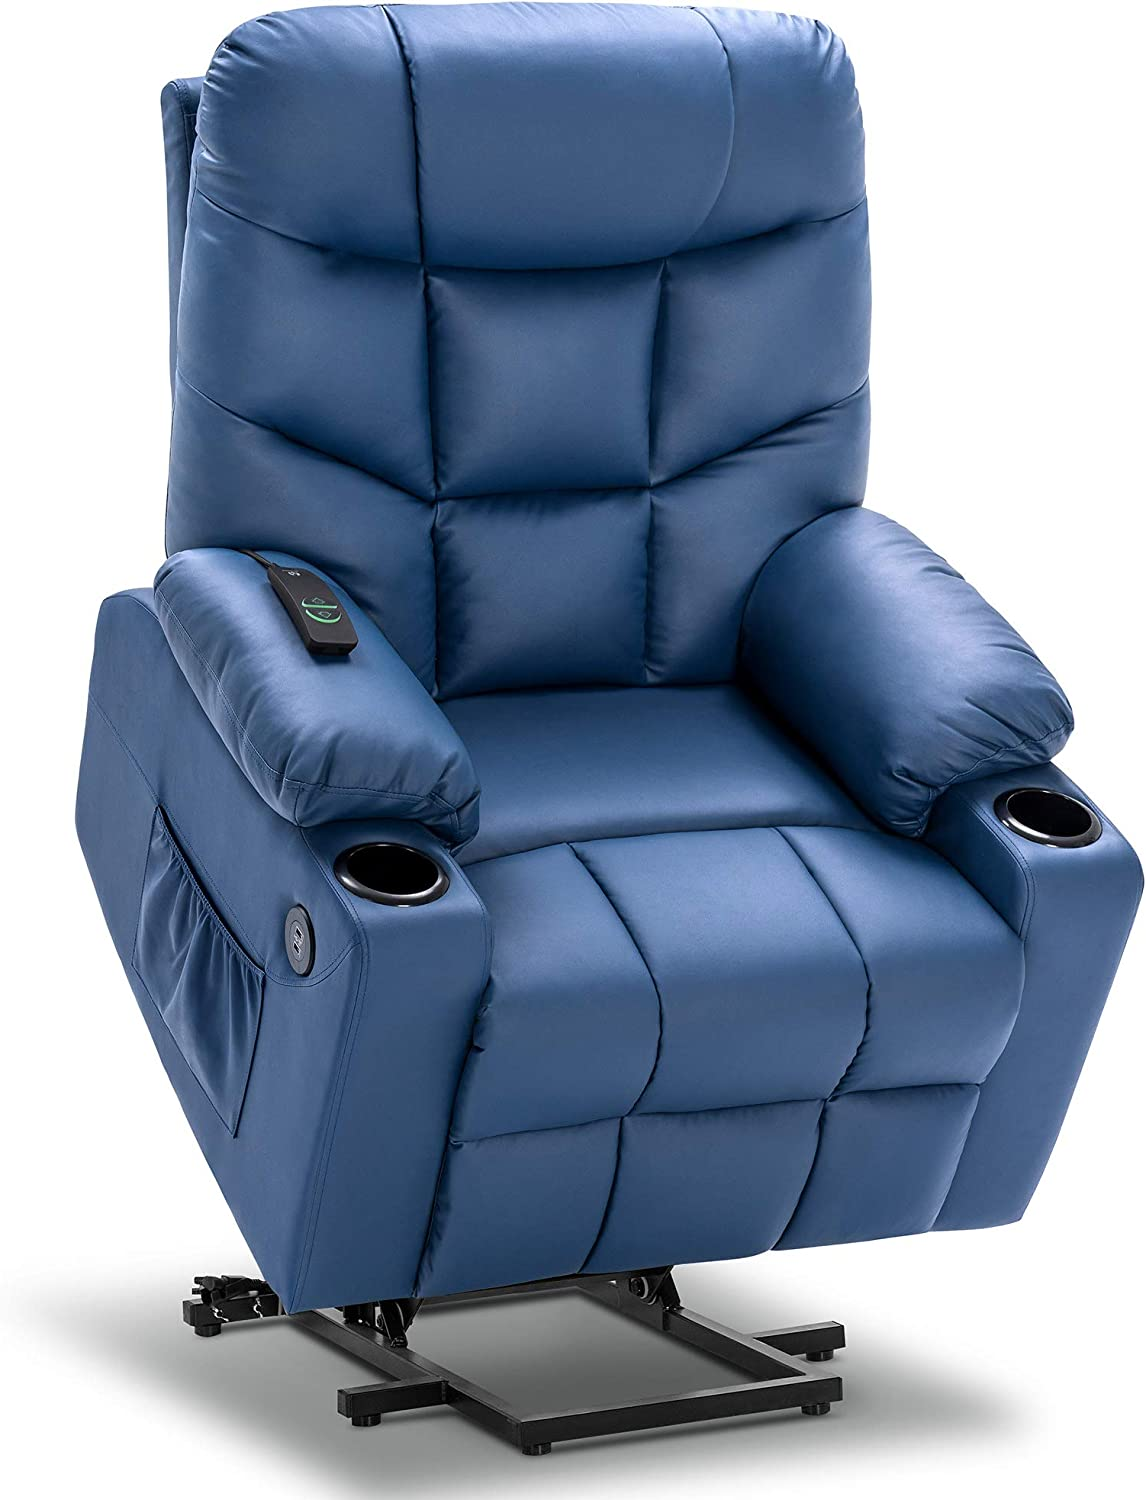 Mcombo Electric Power Lift Recliner Chair Sofa for Elderly, 3 Positions, 2 Side Pockets and Cup Holders, USB Ports, Faux Leather 7288 (Blue)